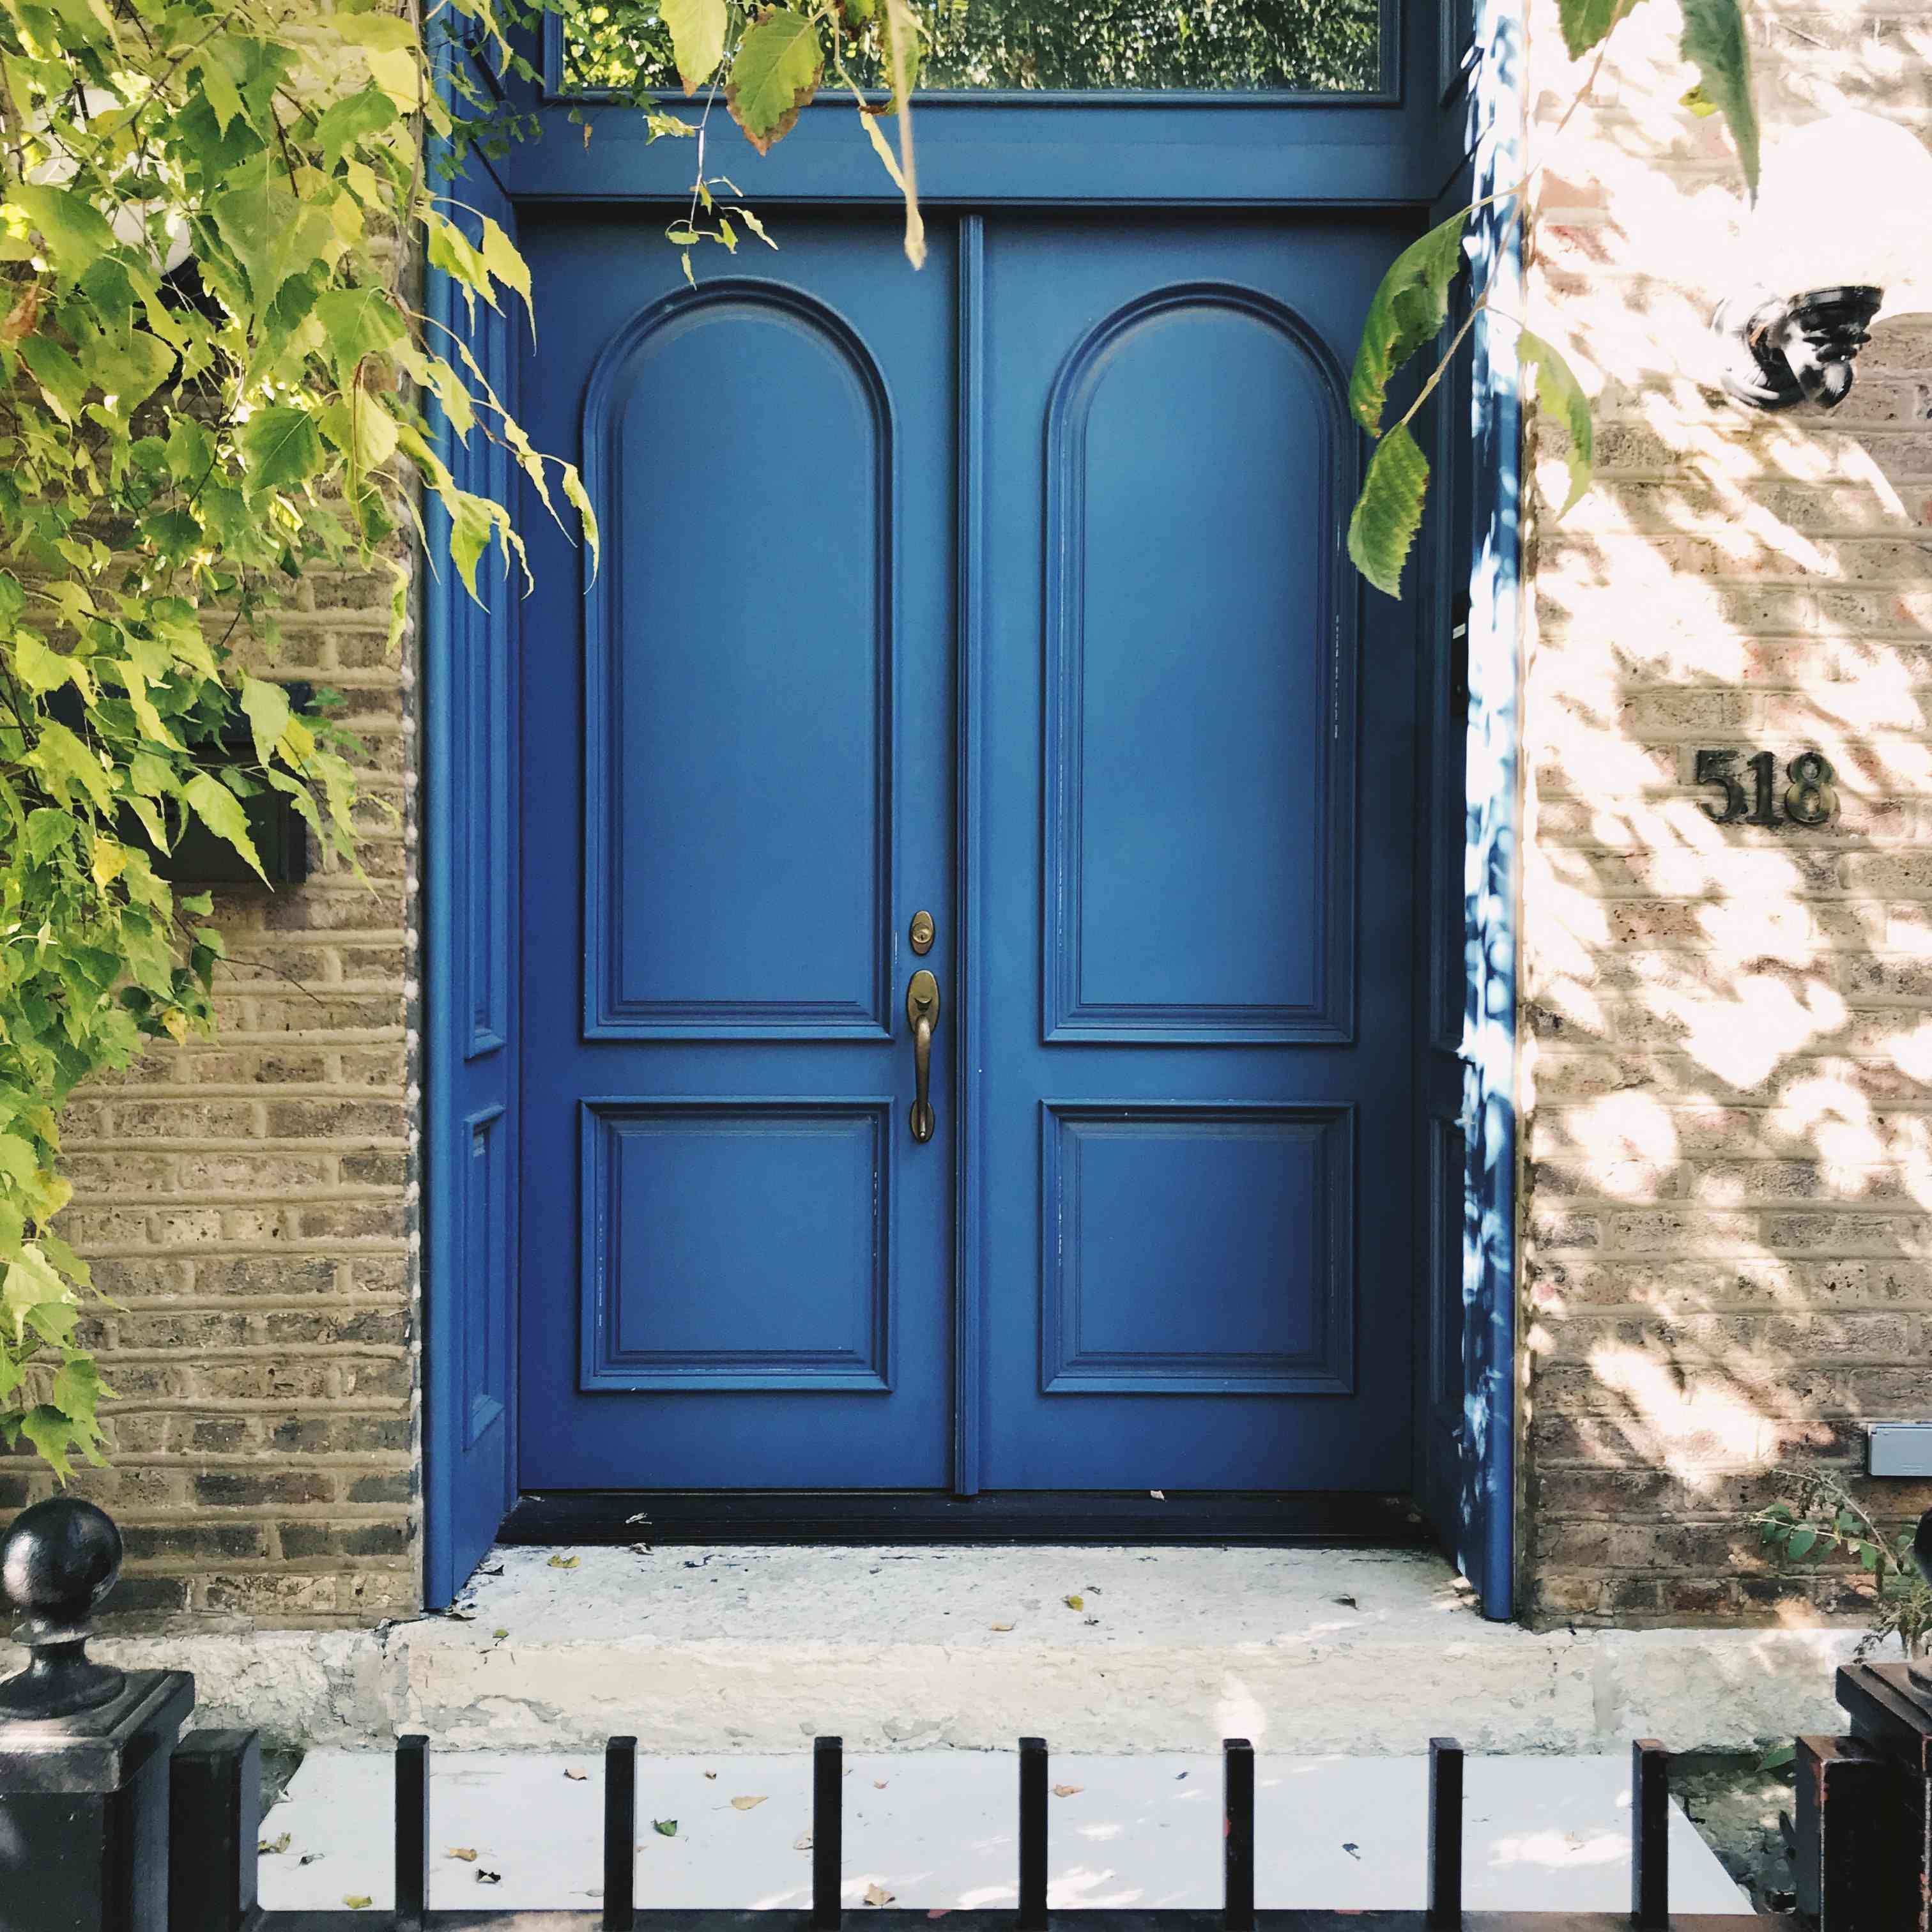 Blue doors accentuate a townhome